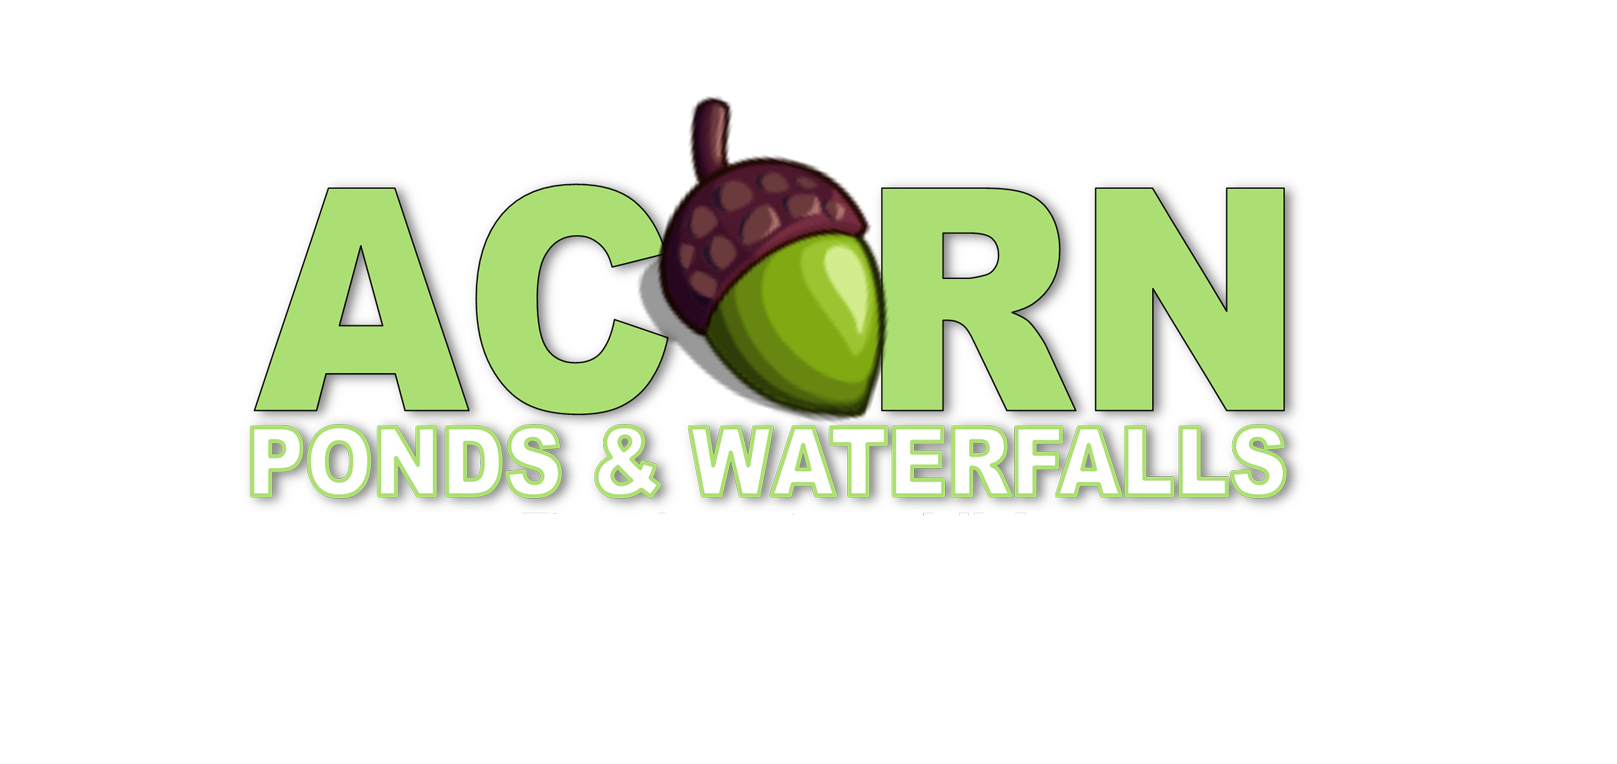 Acorn's Pond - Water Feature Cleaning & Repair In Monroe County Rochester New York Near Me